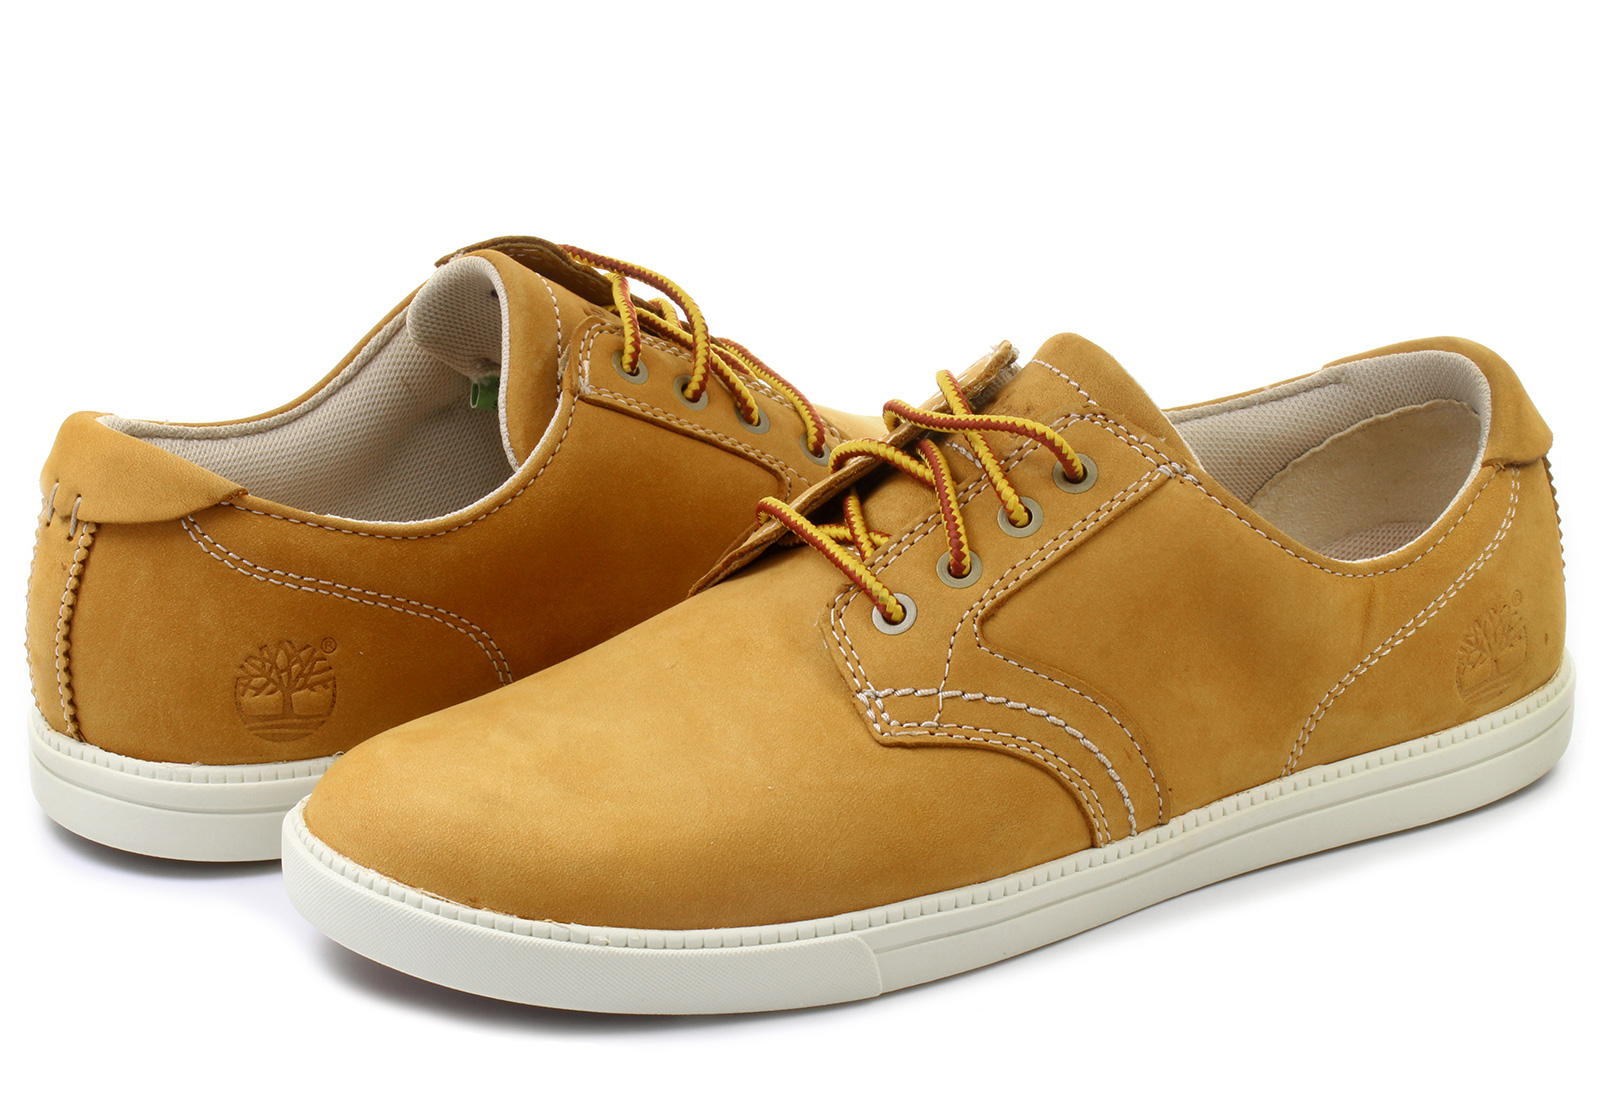 Timberland Shoes - Fulk Ox - 6533R-WHE - Online shop for sneakers ... ed79b1283c7a